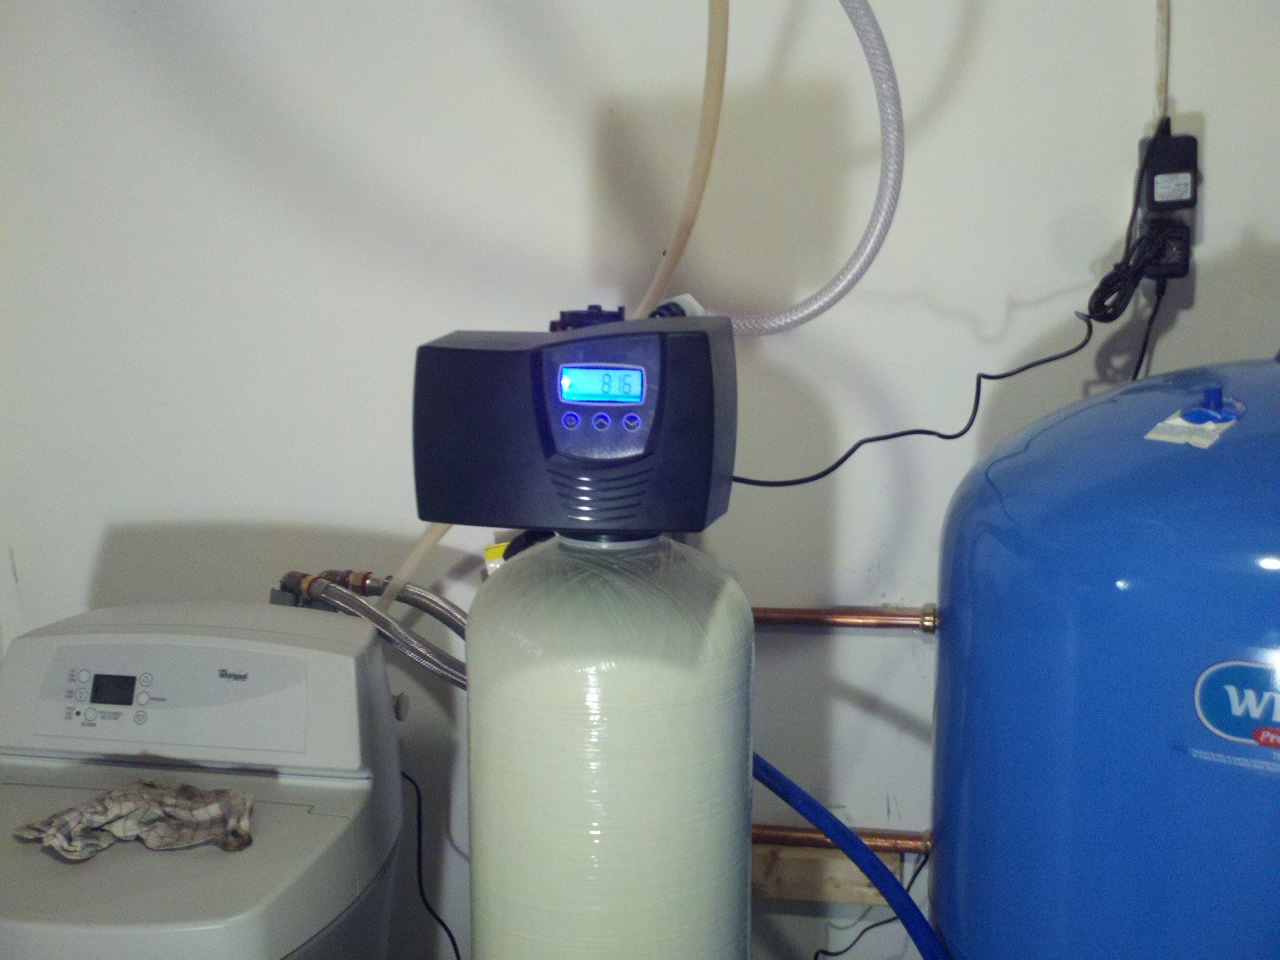 187 Ph Up From 6 4 To 7 4 After Easy Installation